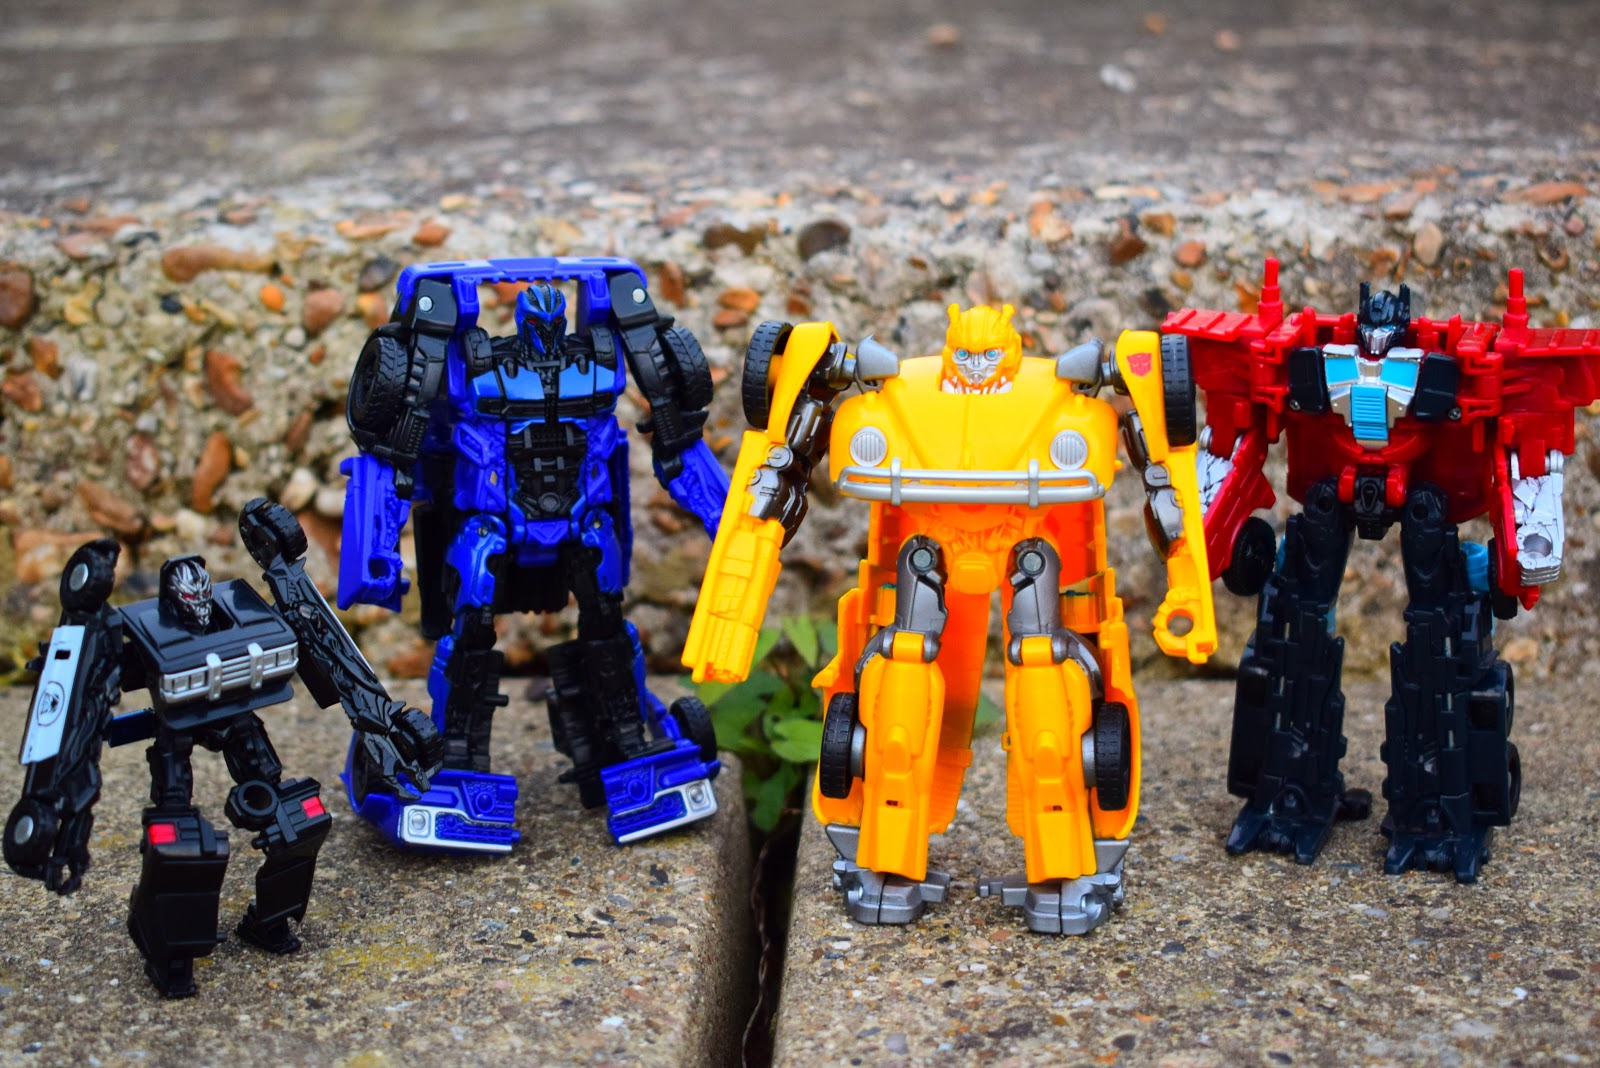 Refined Robot Co : Bumblebee and the Economy of Play